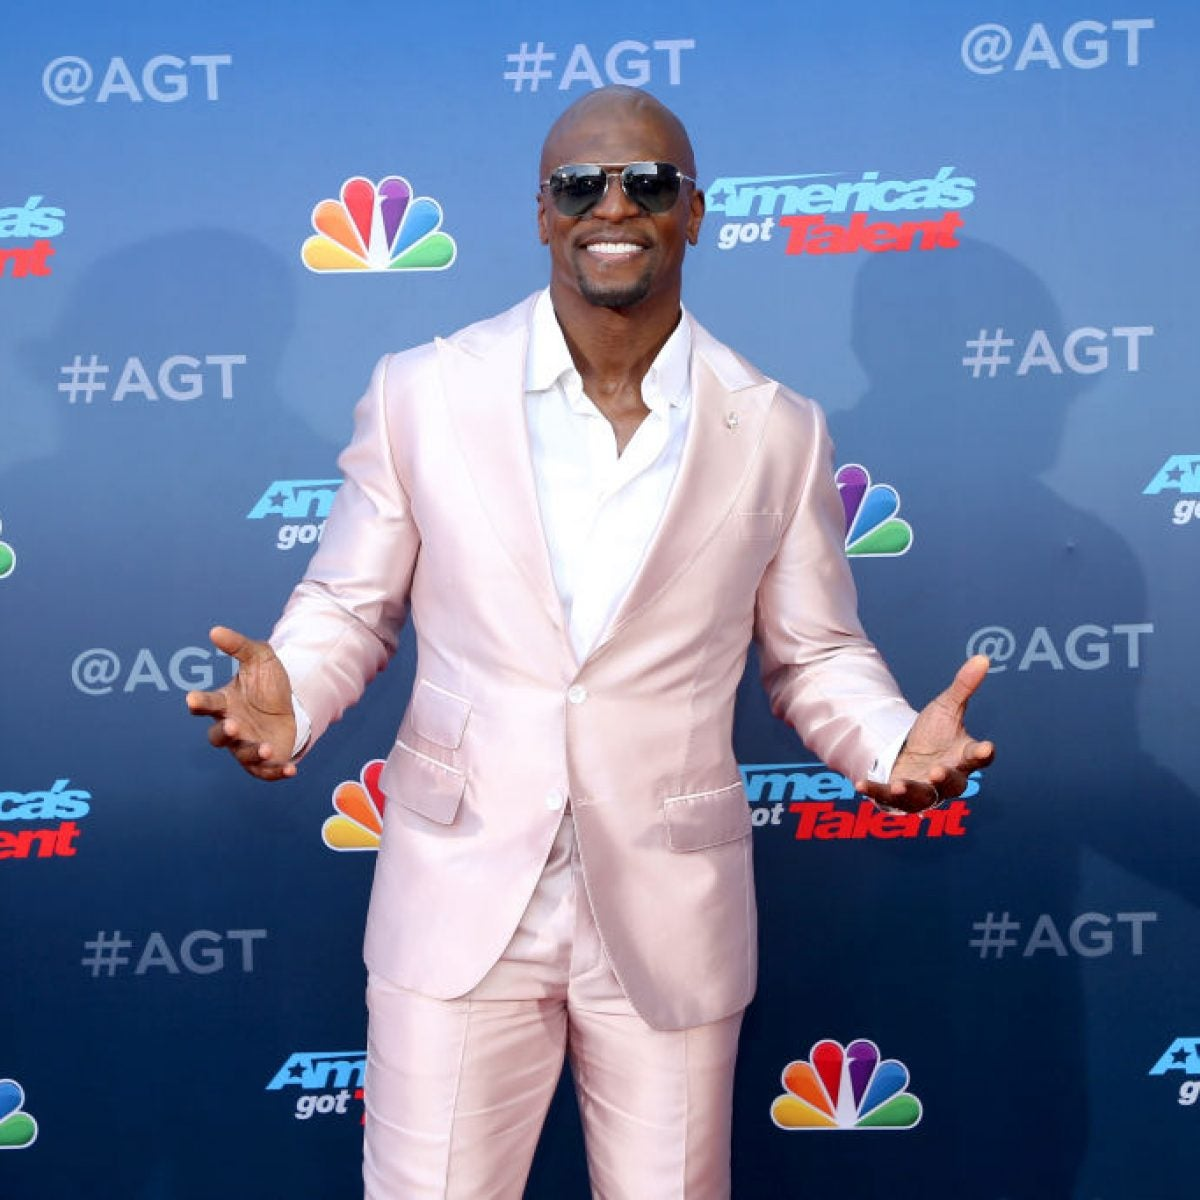 Terry Crews Faces Backlash Over Controversial 'Black Supremacy' Comments